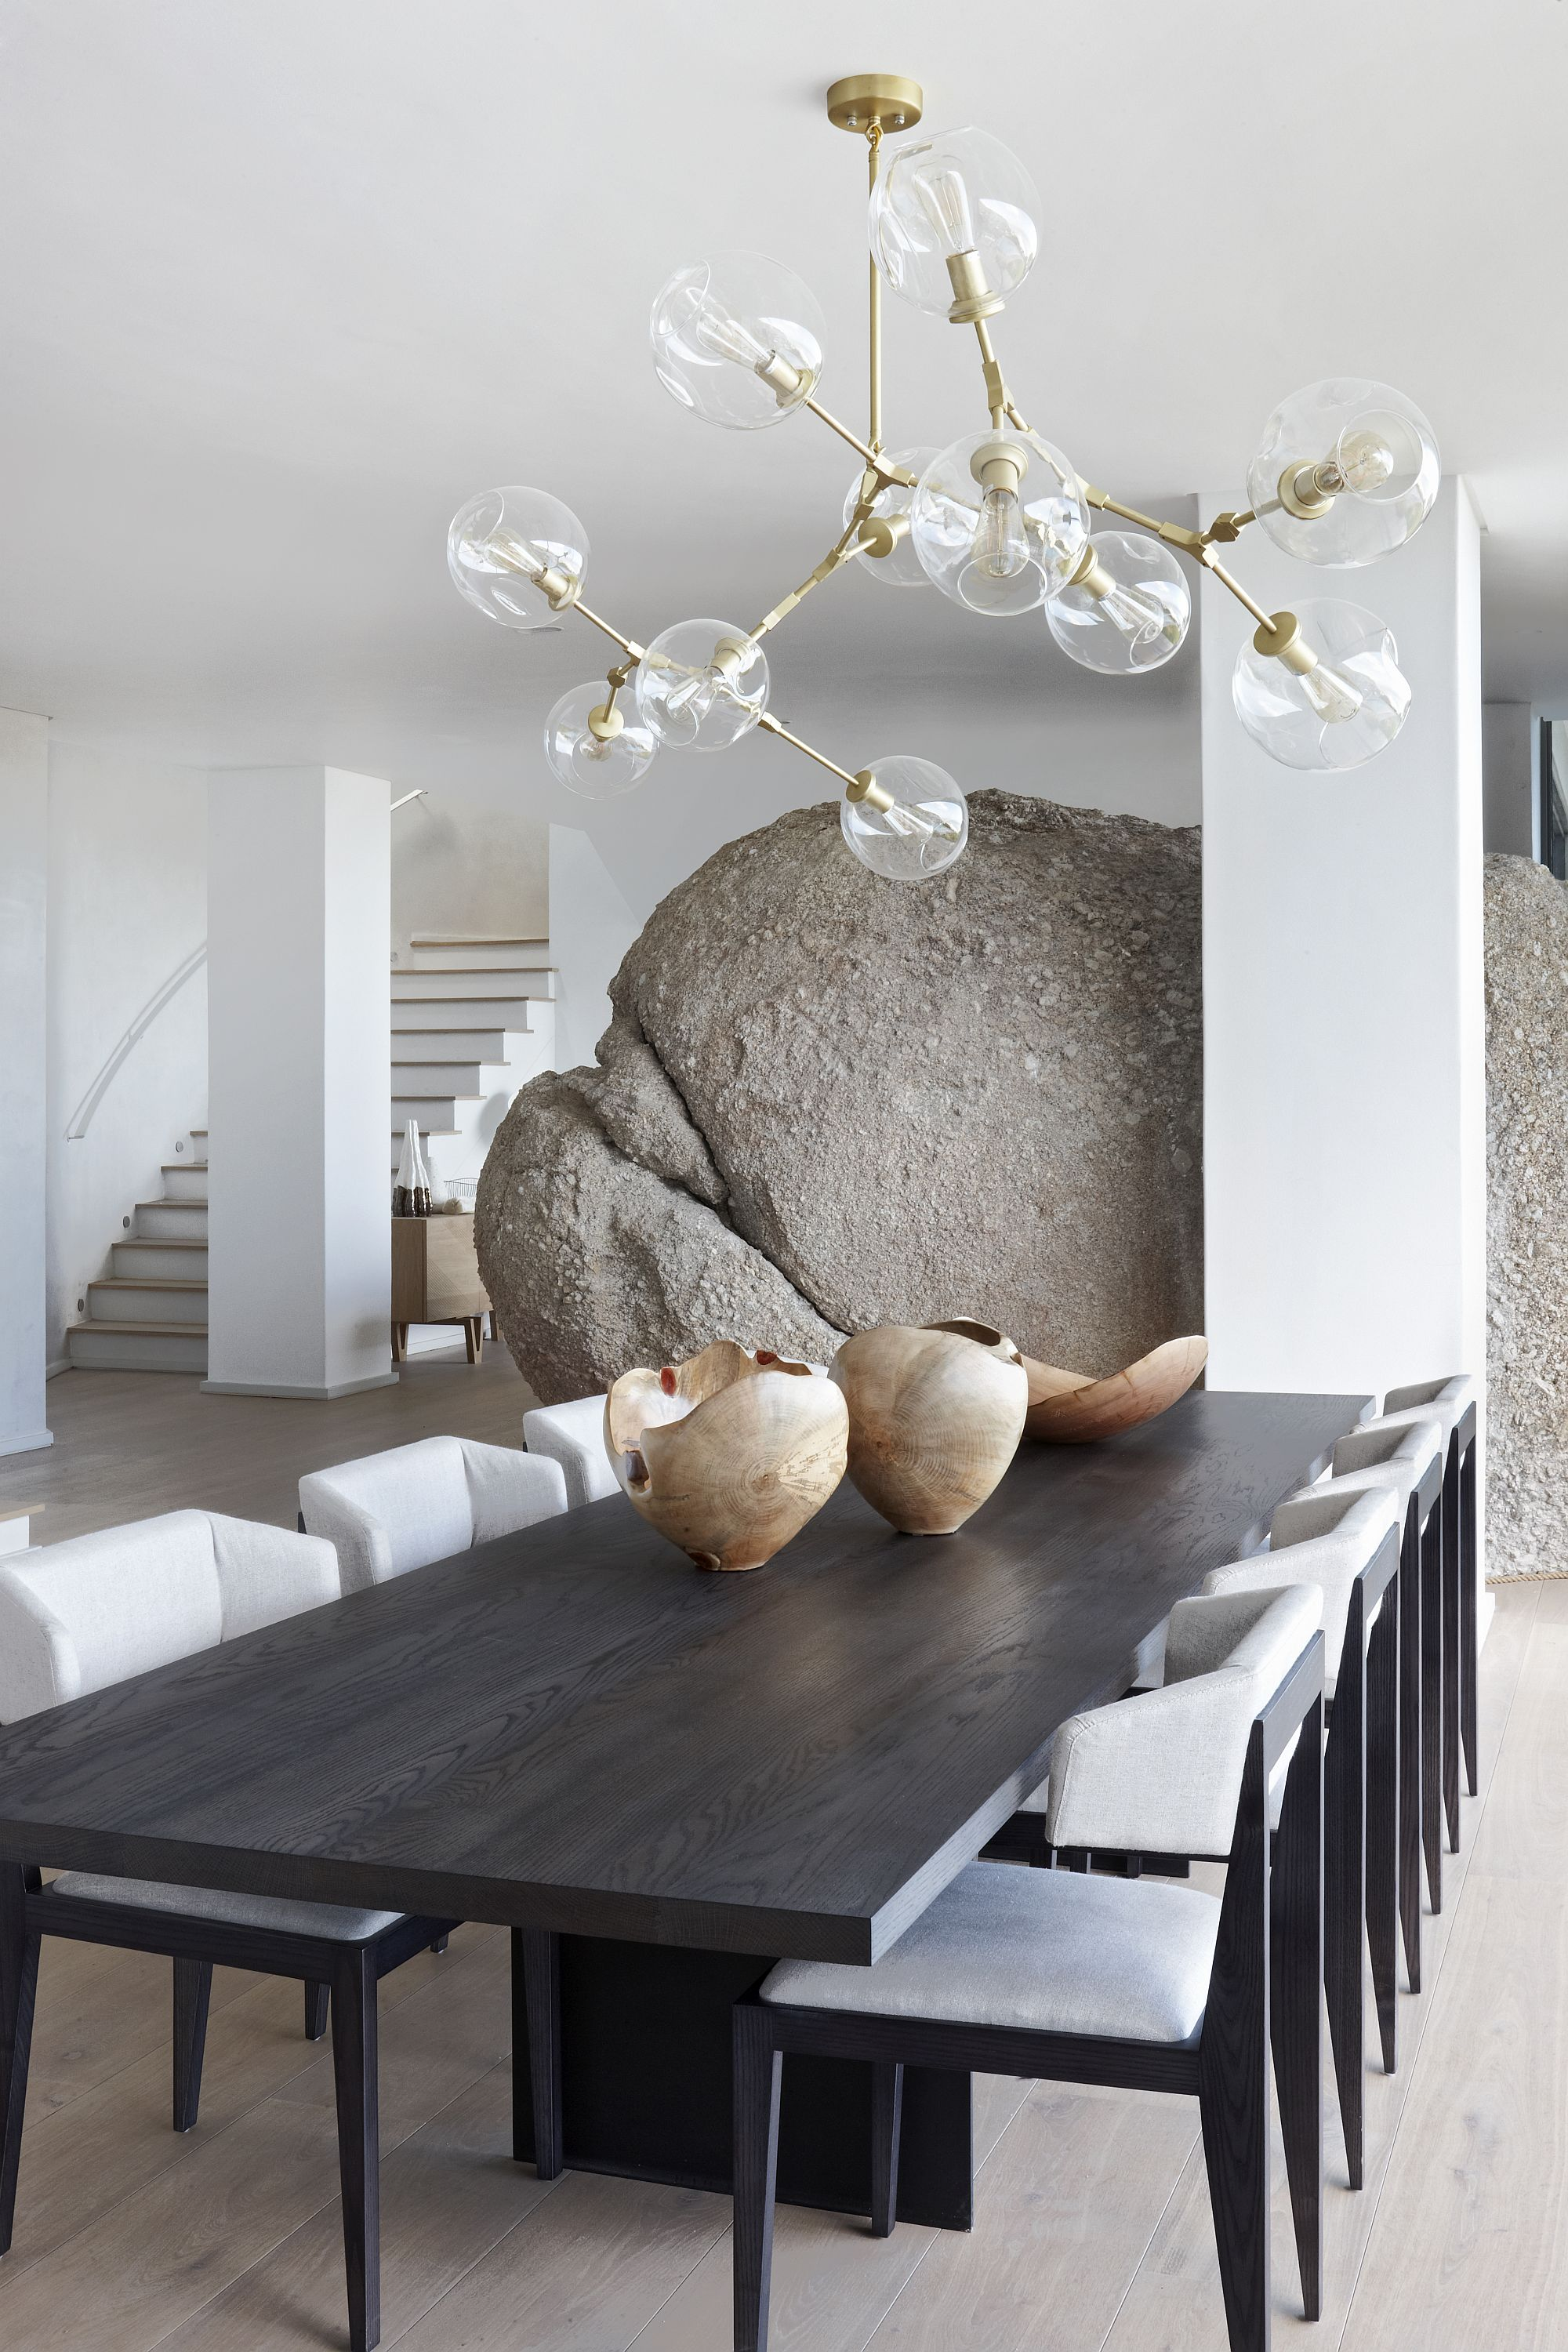 Boulder becomes a part of the modern minimal interior